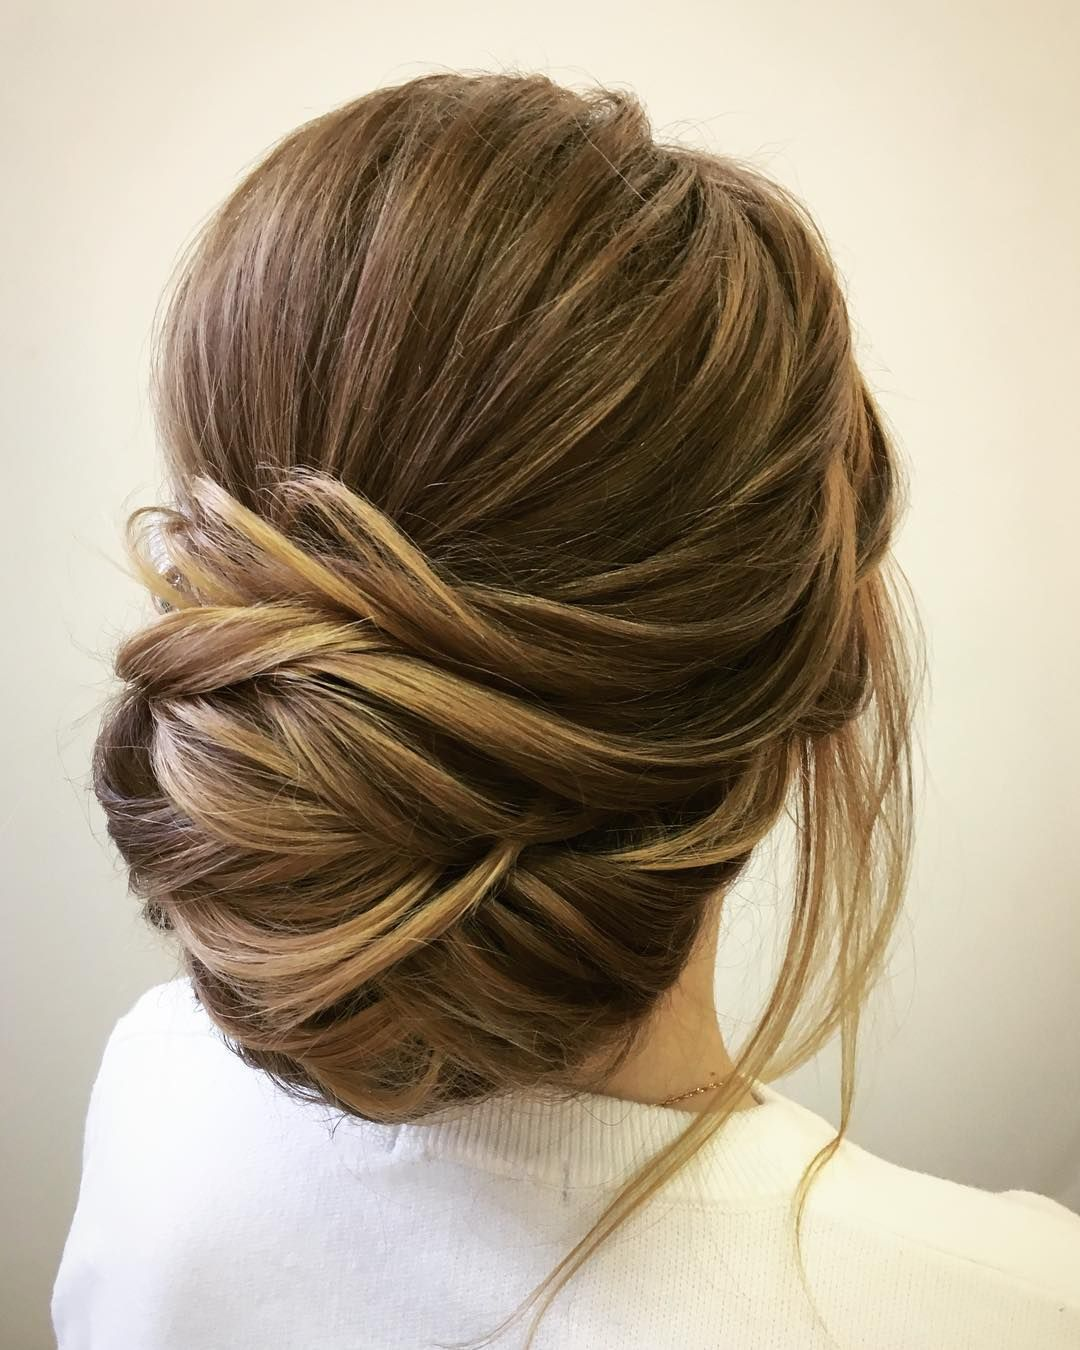 Buns Hairstyles 10 Chignon Buns For Every Occasion  New Season's Best Buns